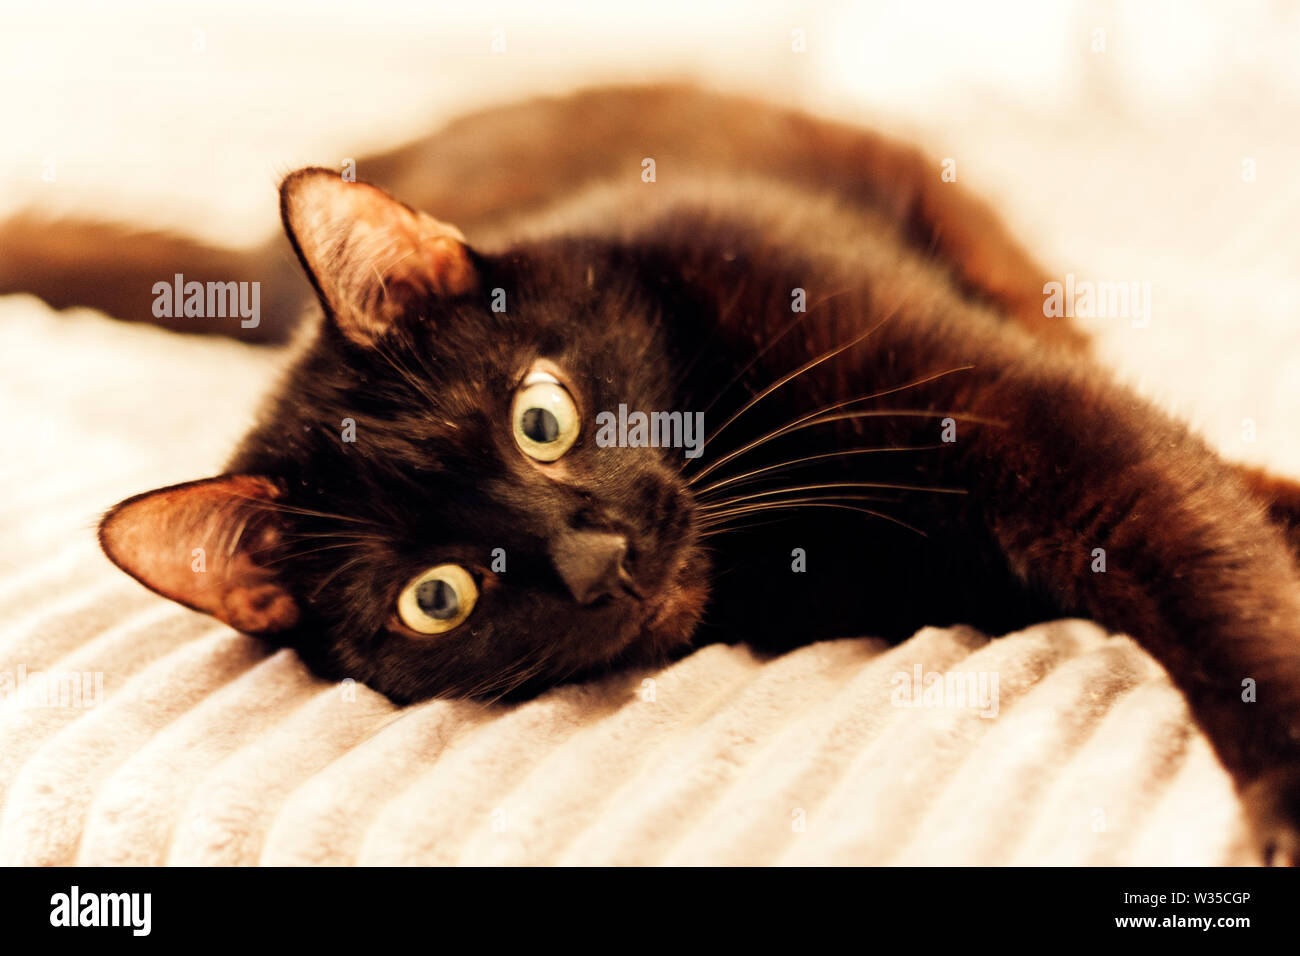 Black cat lying on the gray fur cover on bed - Stock Image